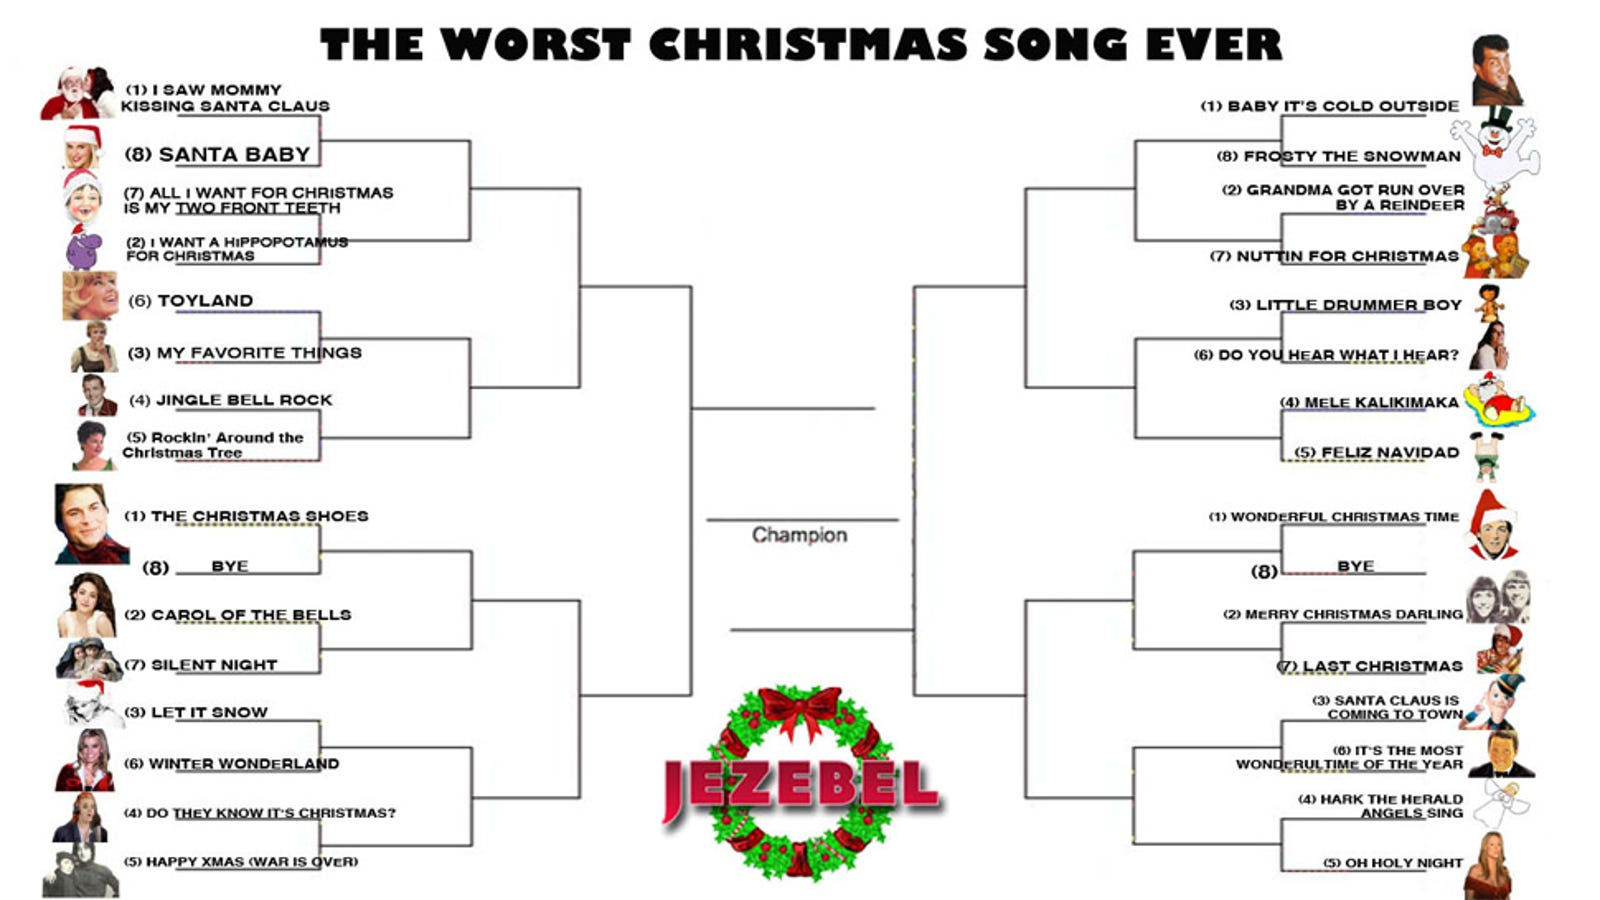 December Madness: The Tournament To Crown The Worst Christmas Song Ever